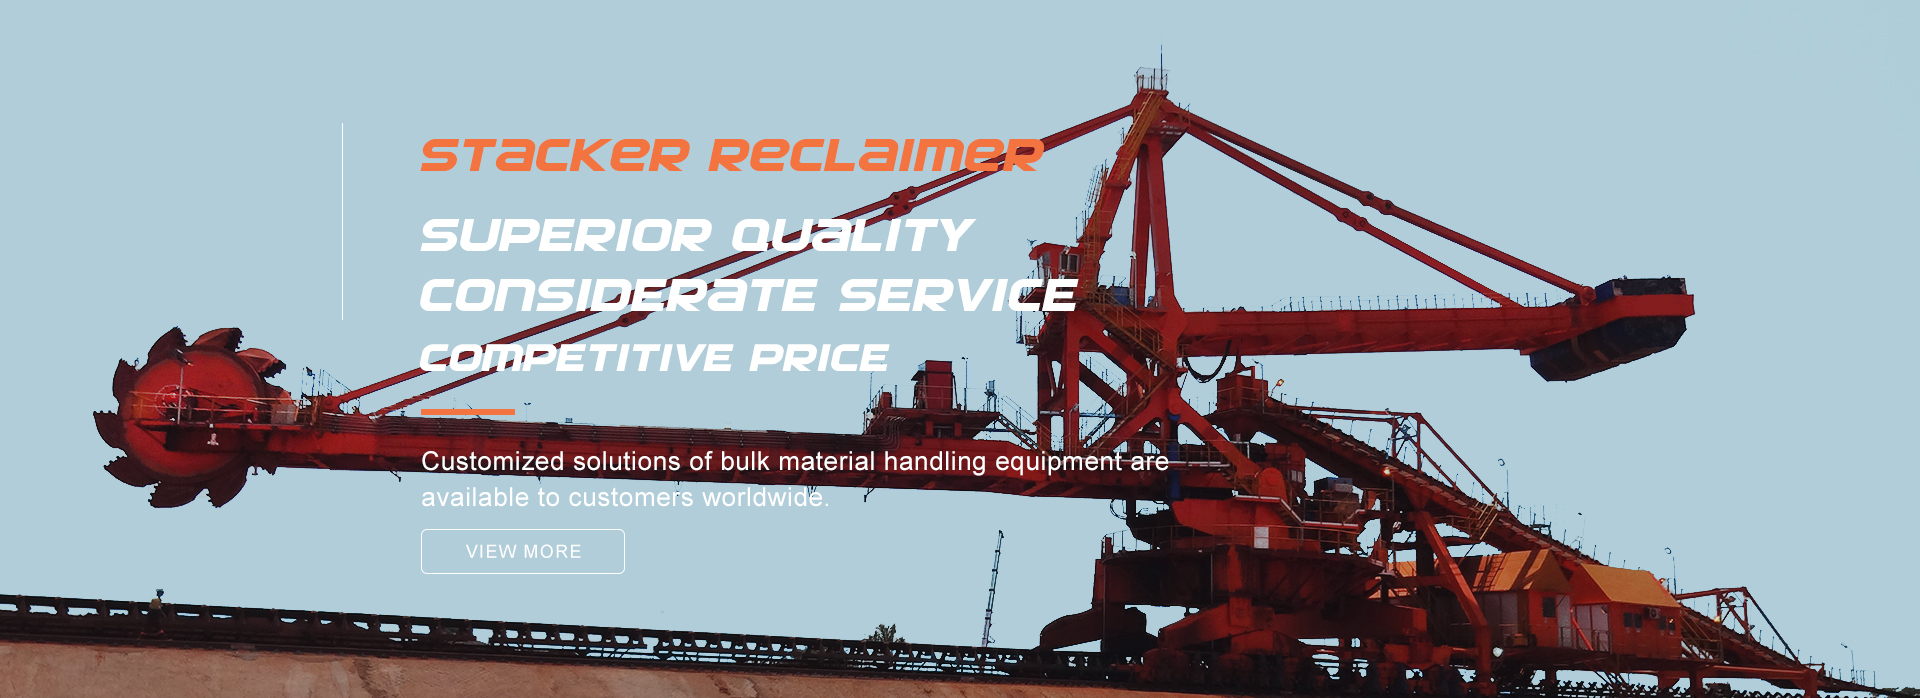 stacker reclaimer